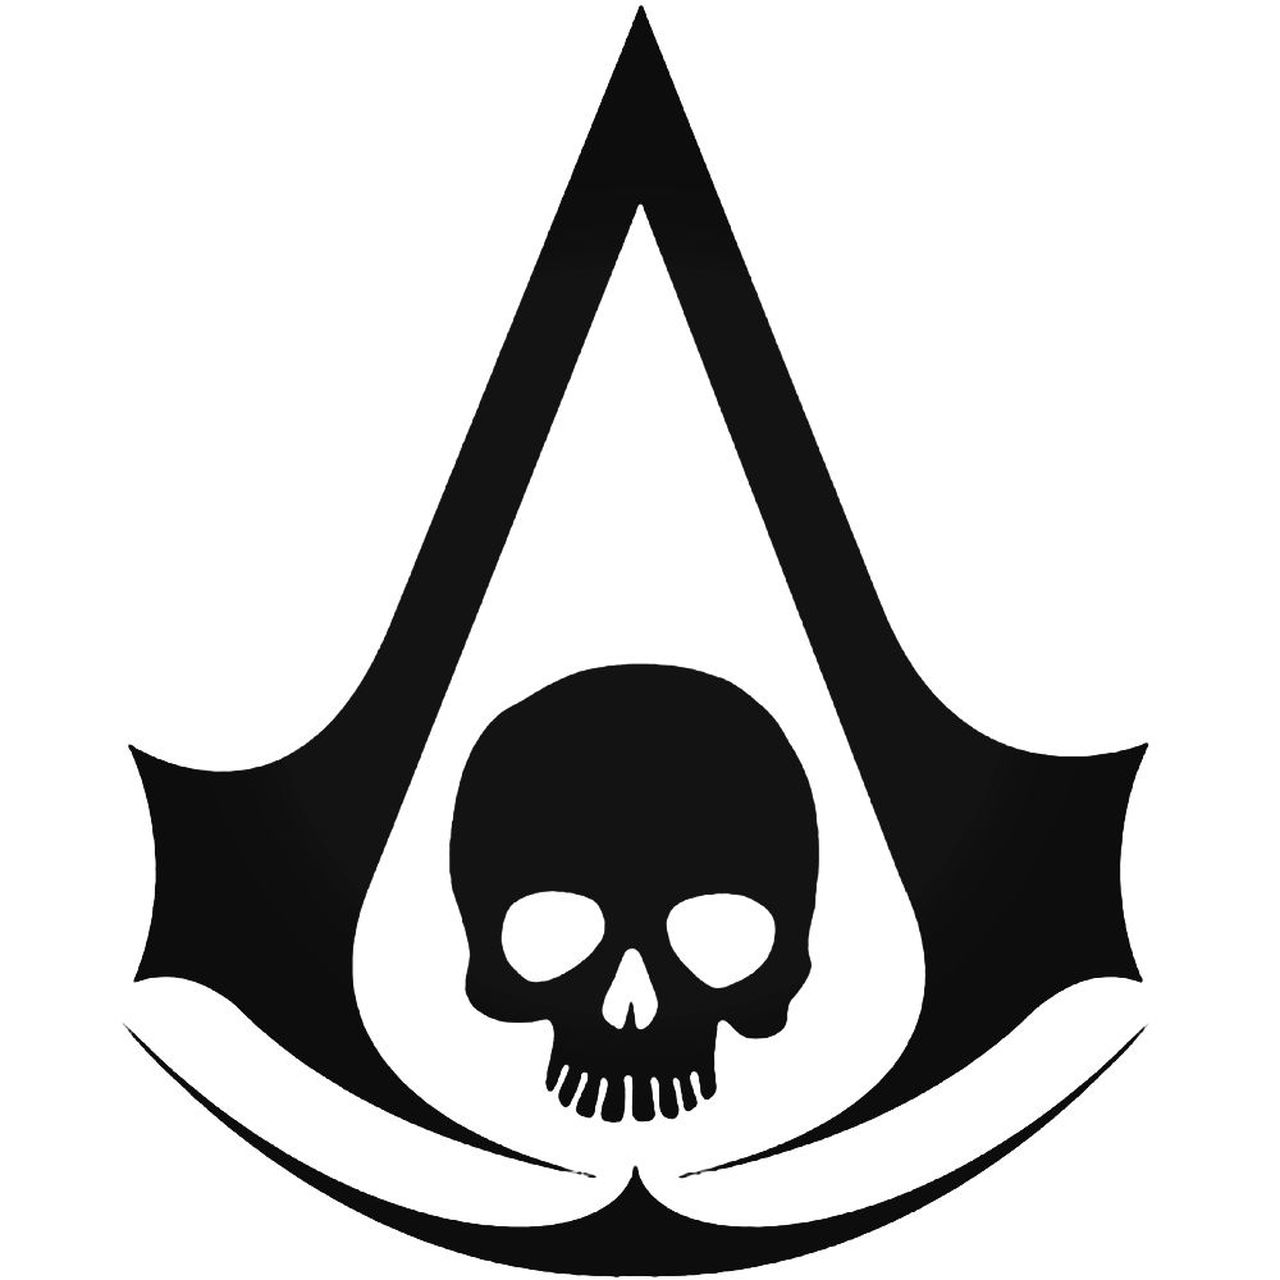 Assassins Creed Black Flag 600 Sticker.